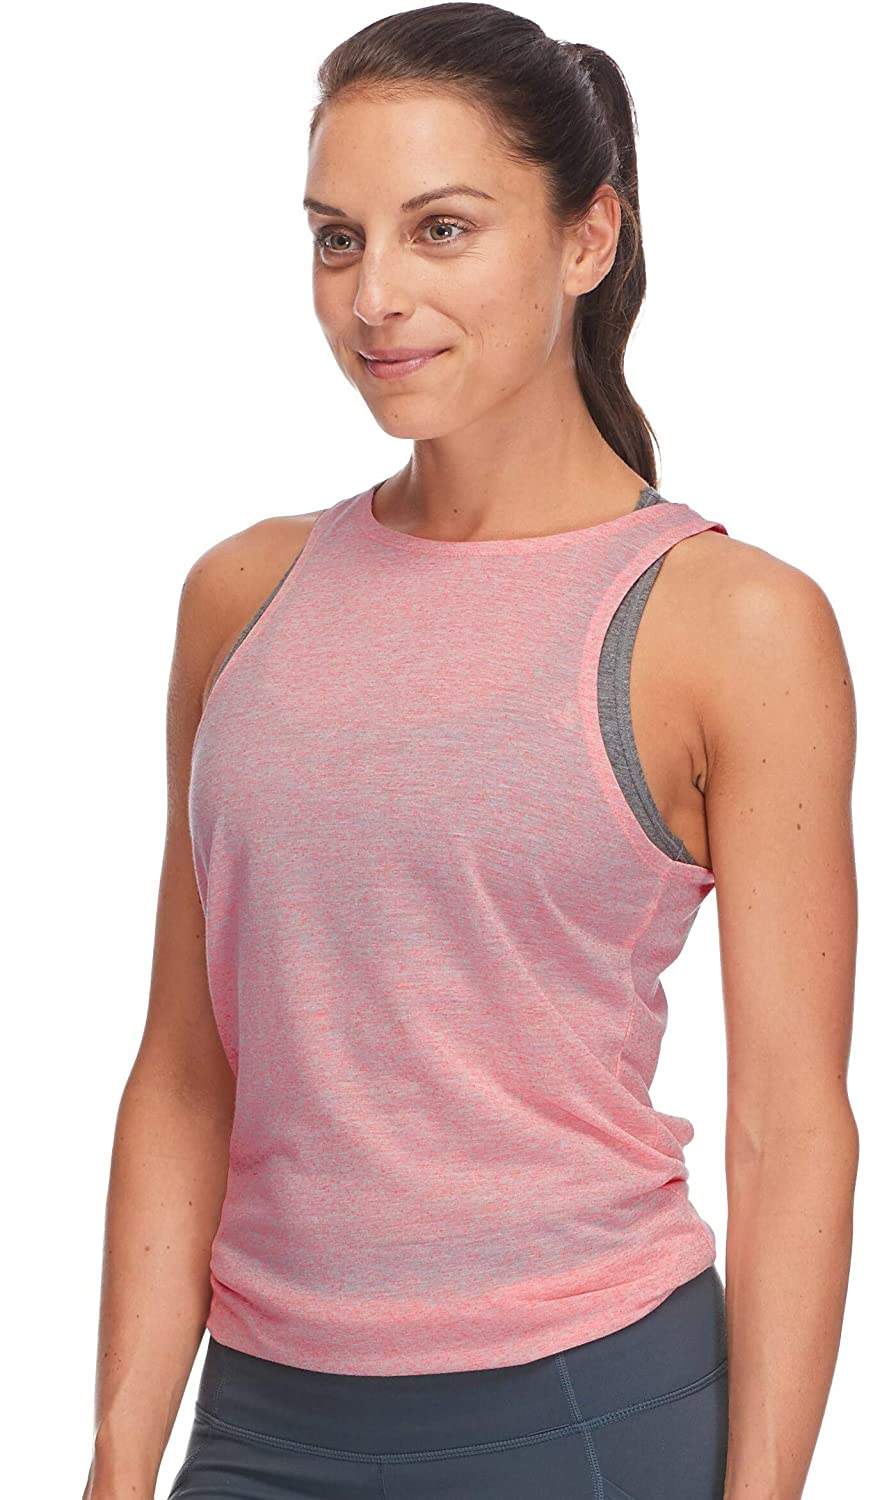 Body Glove Womens Calima Relaxed Fit Activewear Tank Top Body Glove Active 29039721